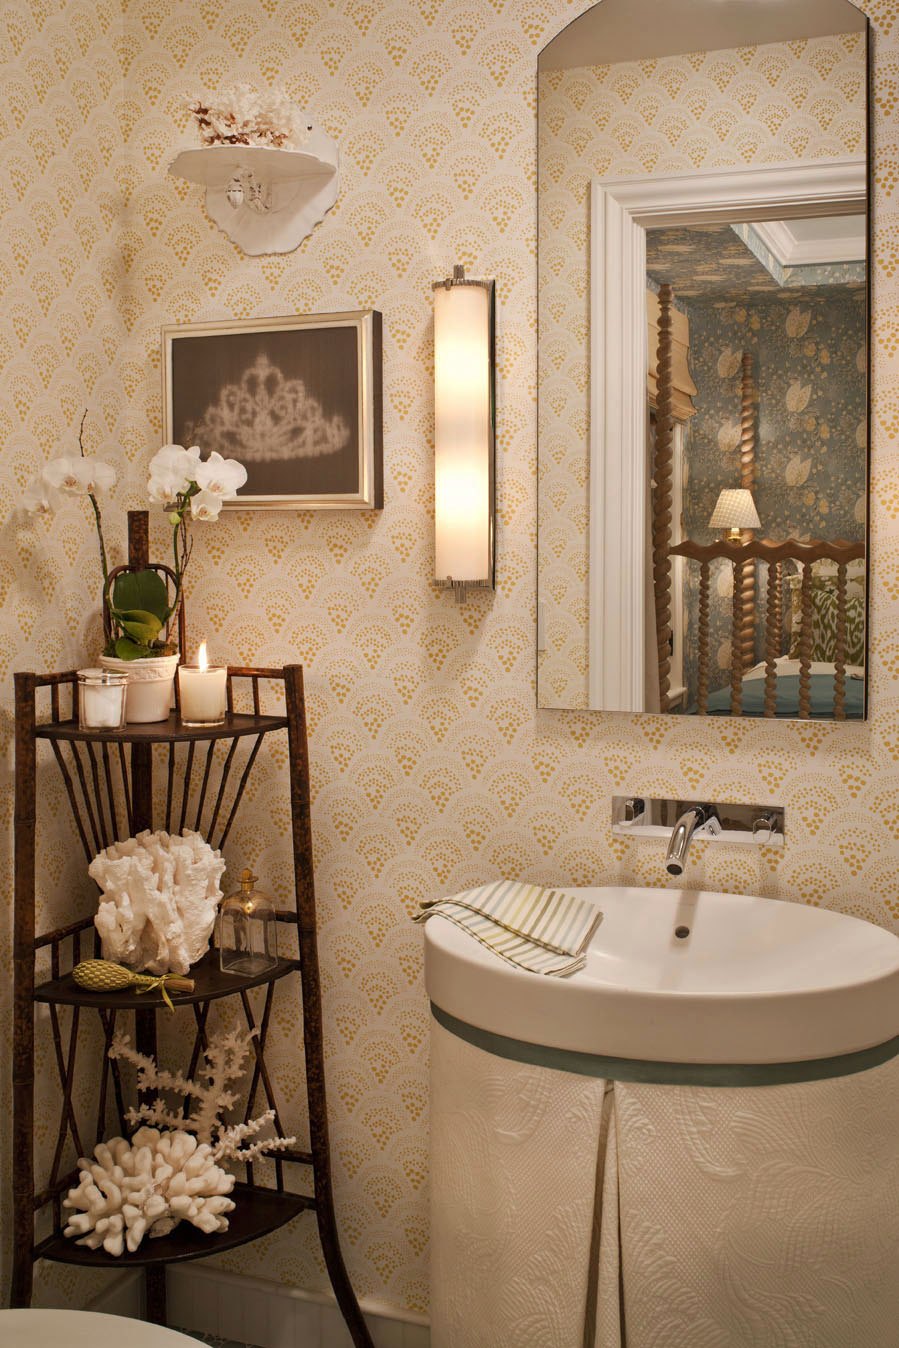 8 photos of the 8 ideal designer wallpaper for bathrooms - Designer Wallpaper For Bathrooms